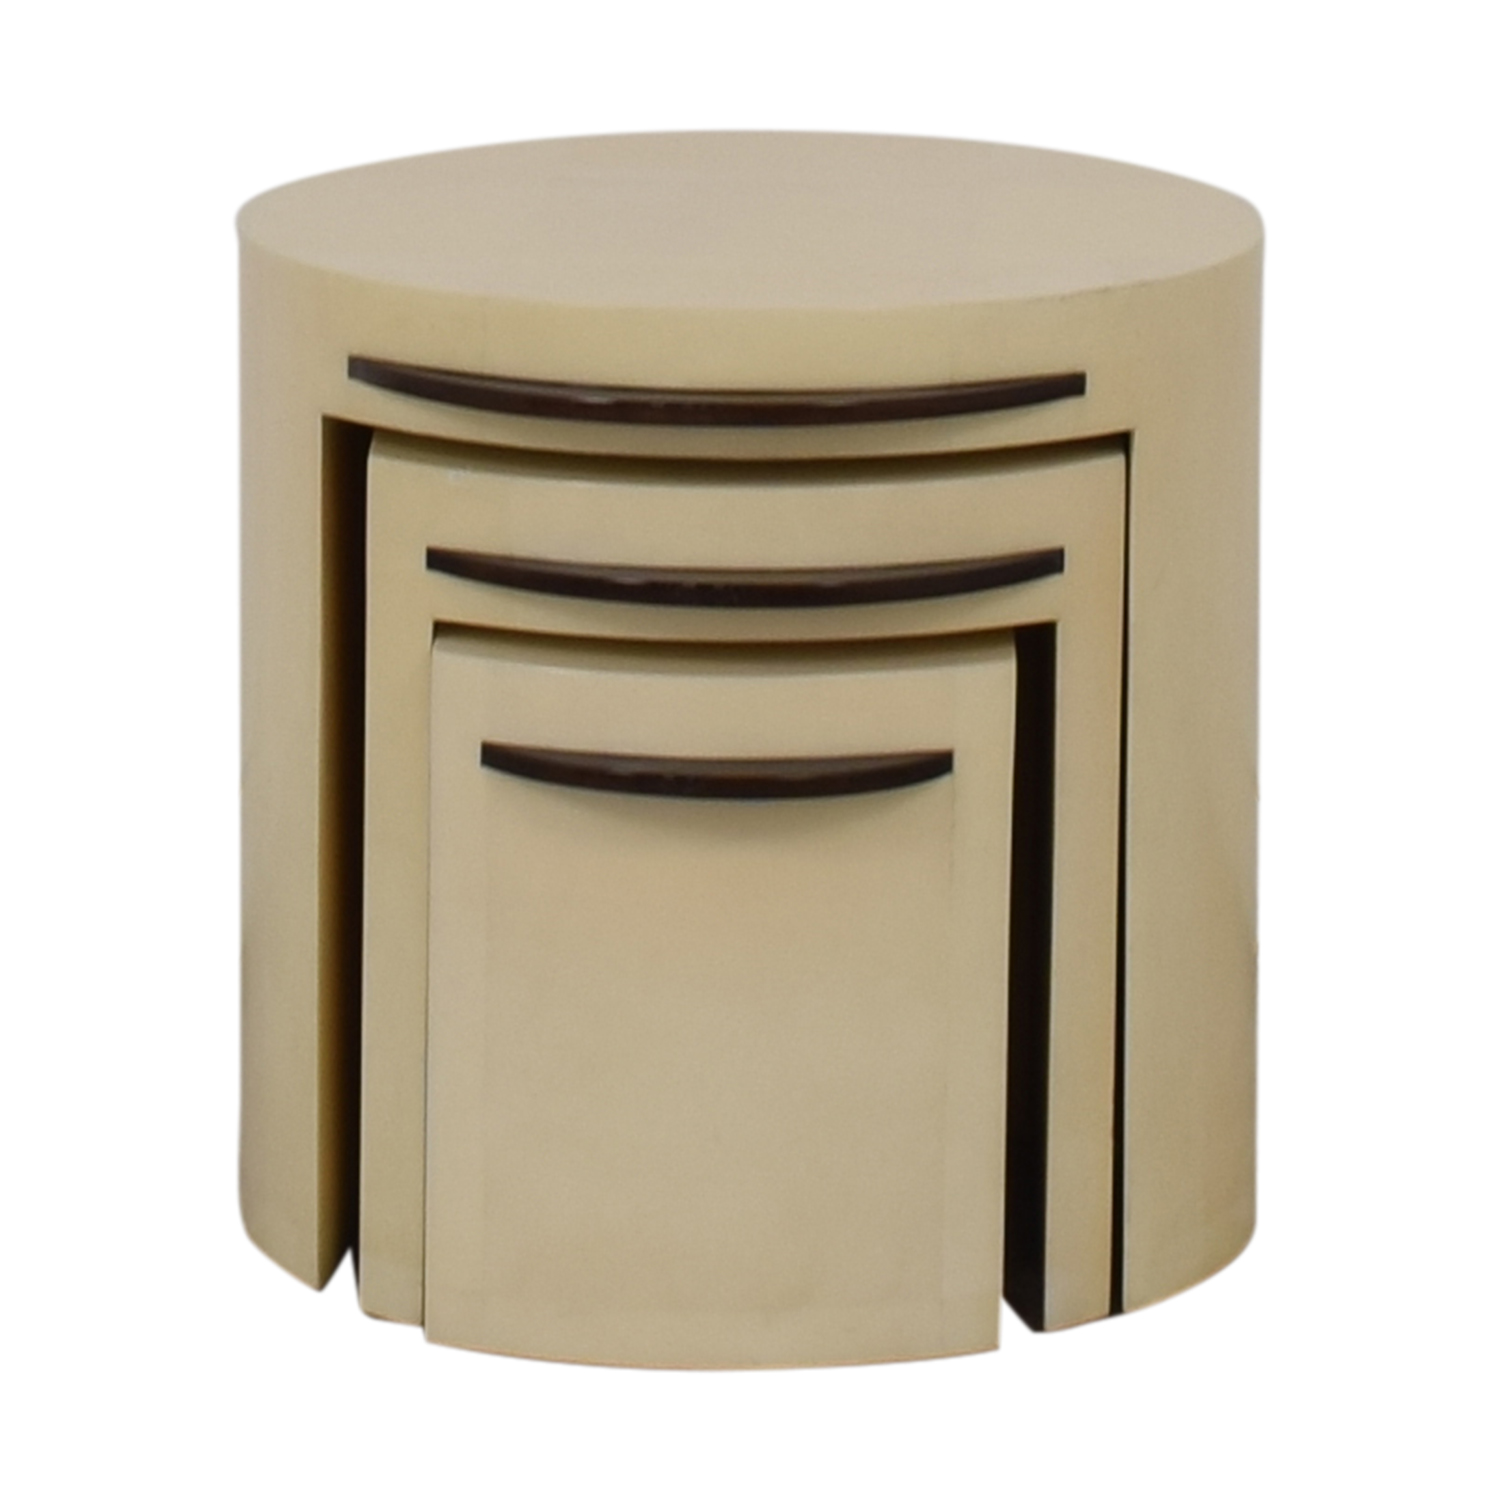 Lorin Marsh Lacquered Nesting Tables / Tables